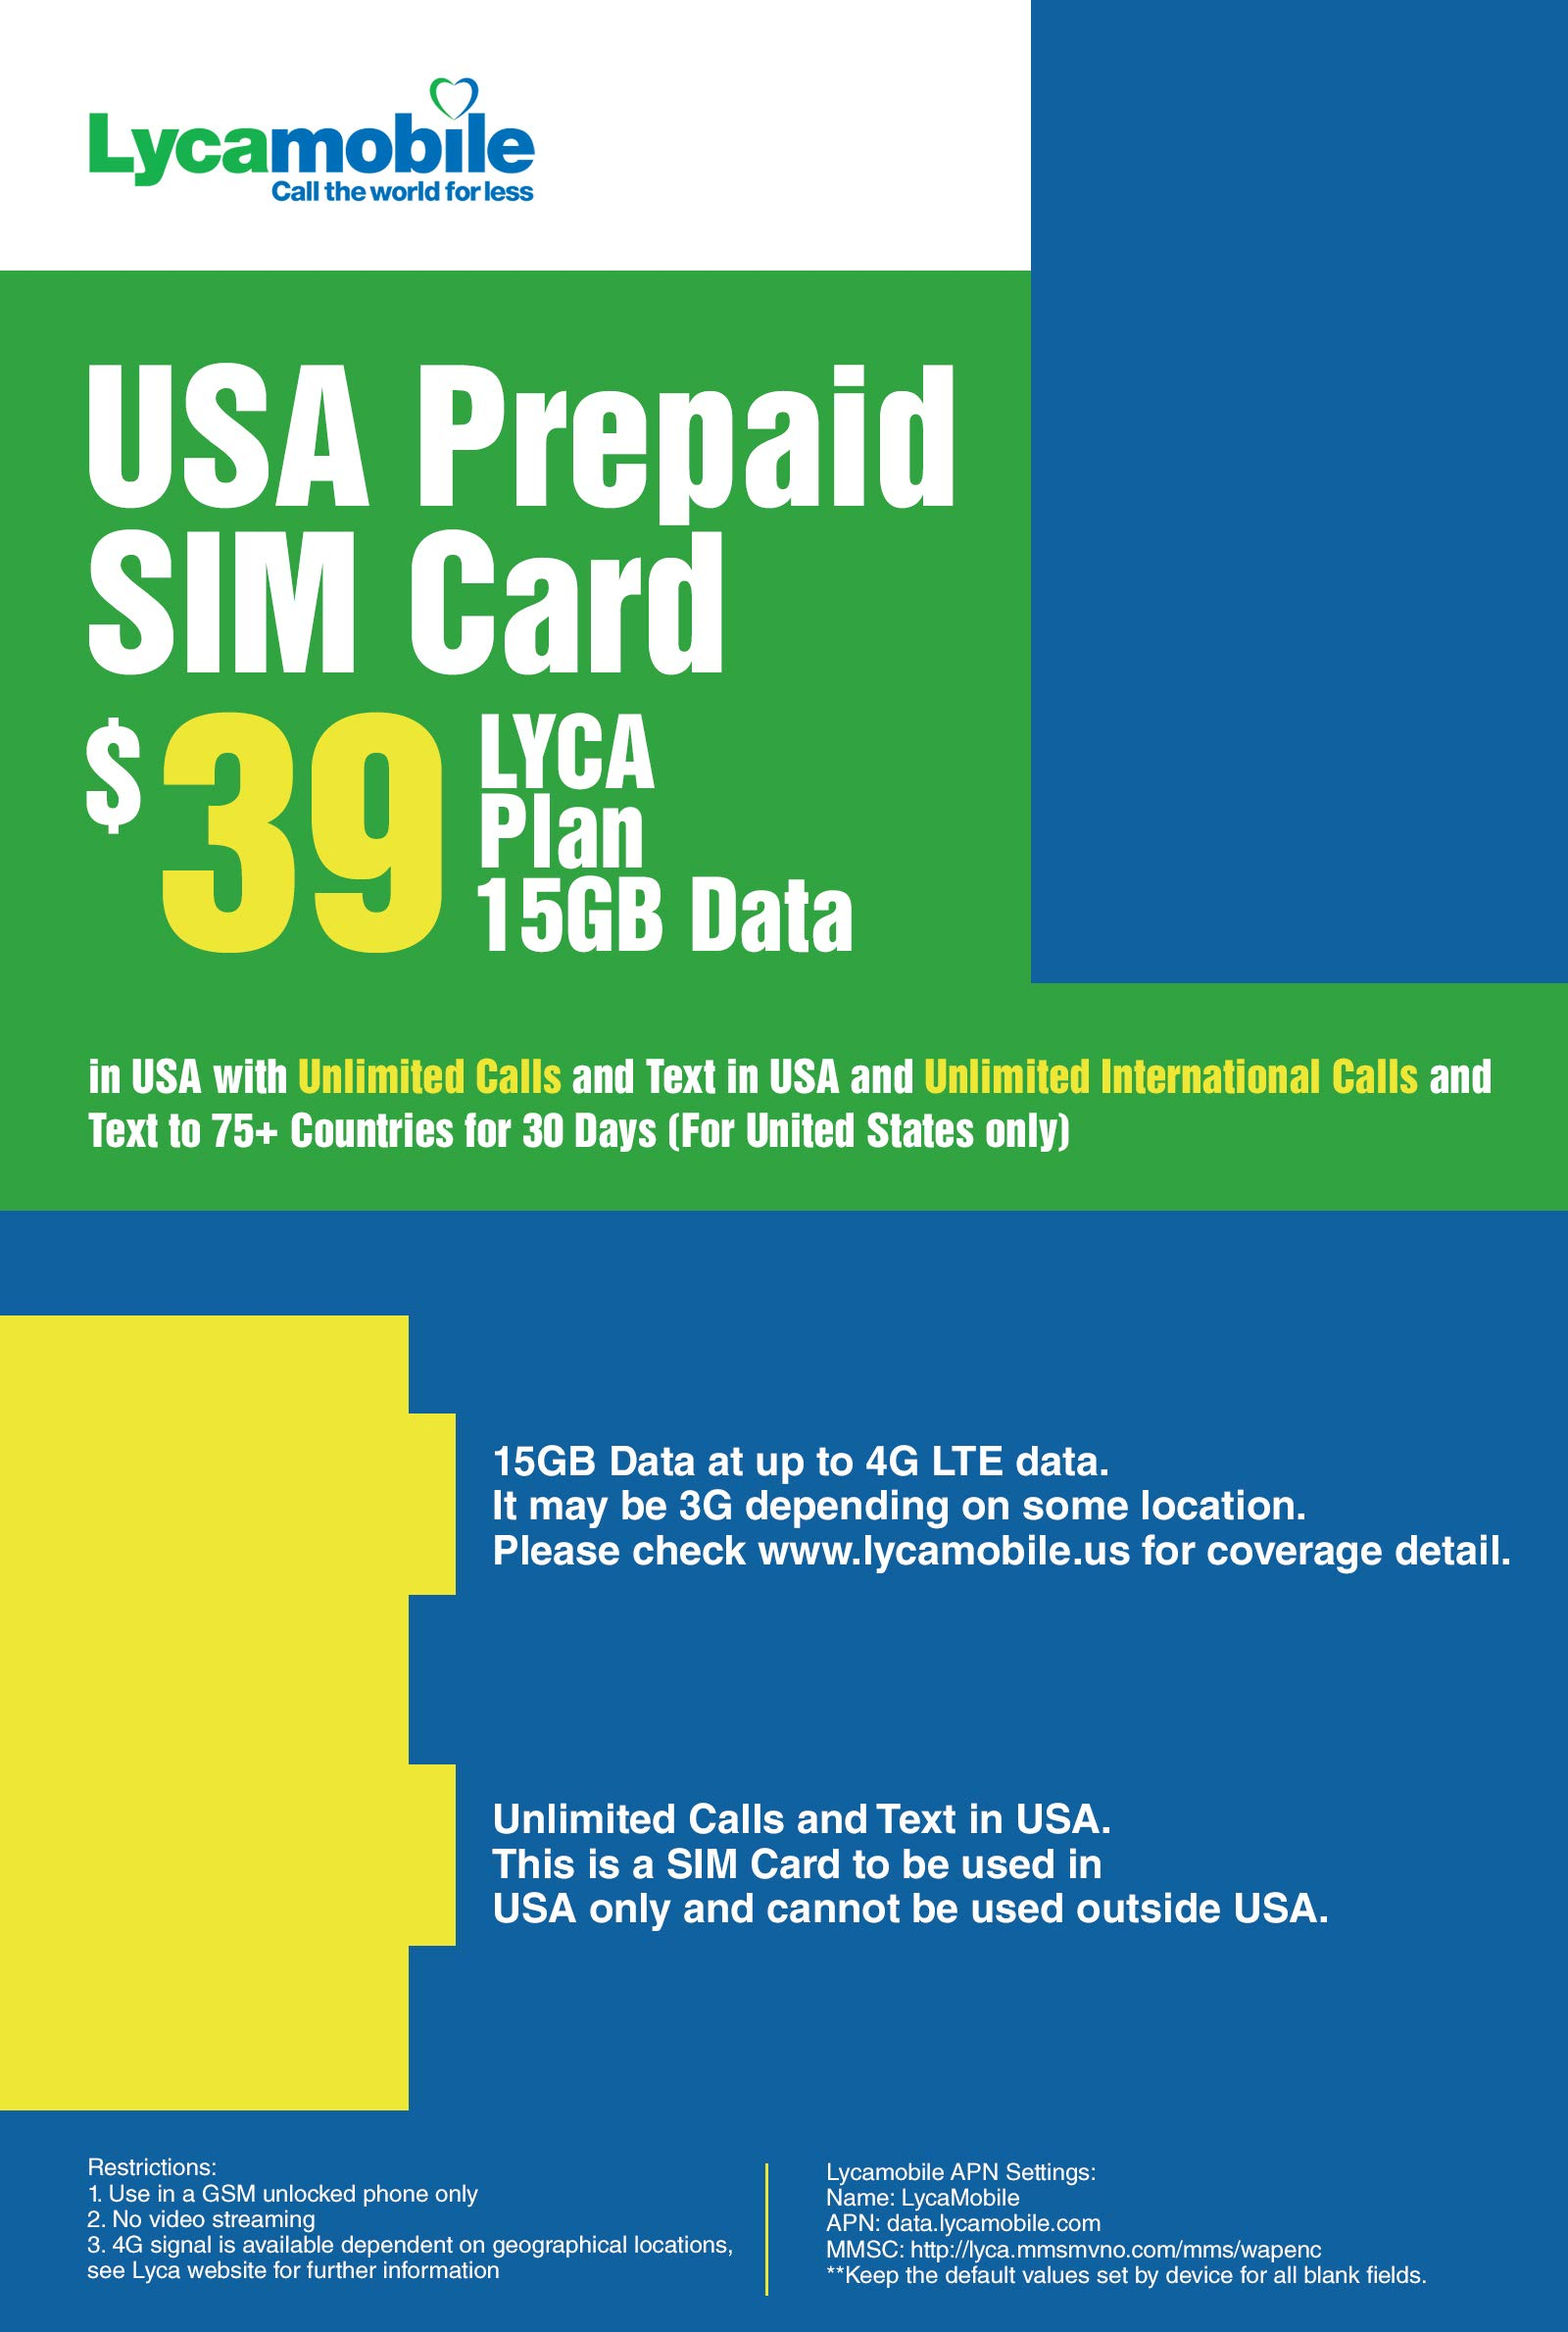 USA Prepaid SIM Card LYCA $39 Plan 15GB Data in USA with Unlimited Calls and Text in USA and Unlimited International Calls and Text to 75+ Countries for 30 Days (for United States only) by Lycamobile